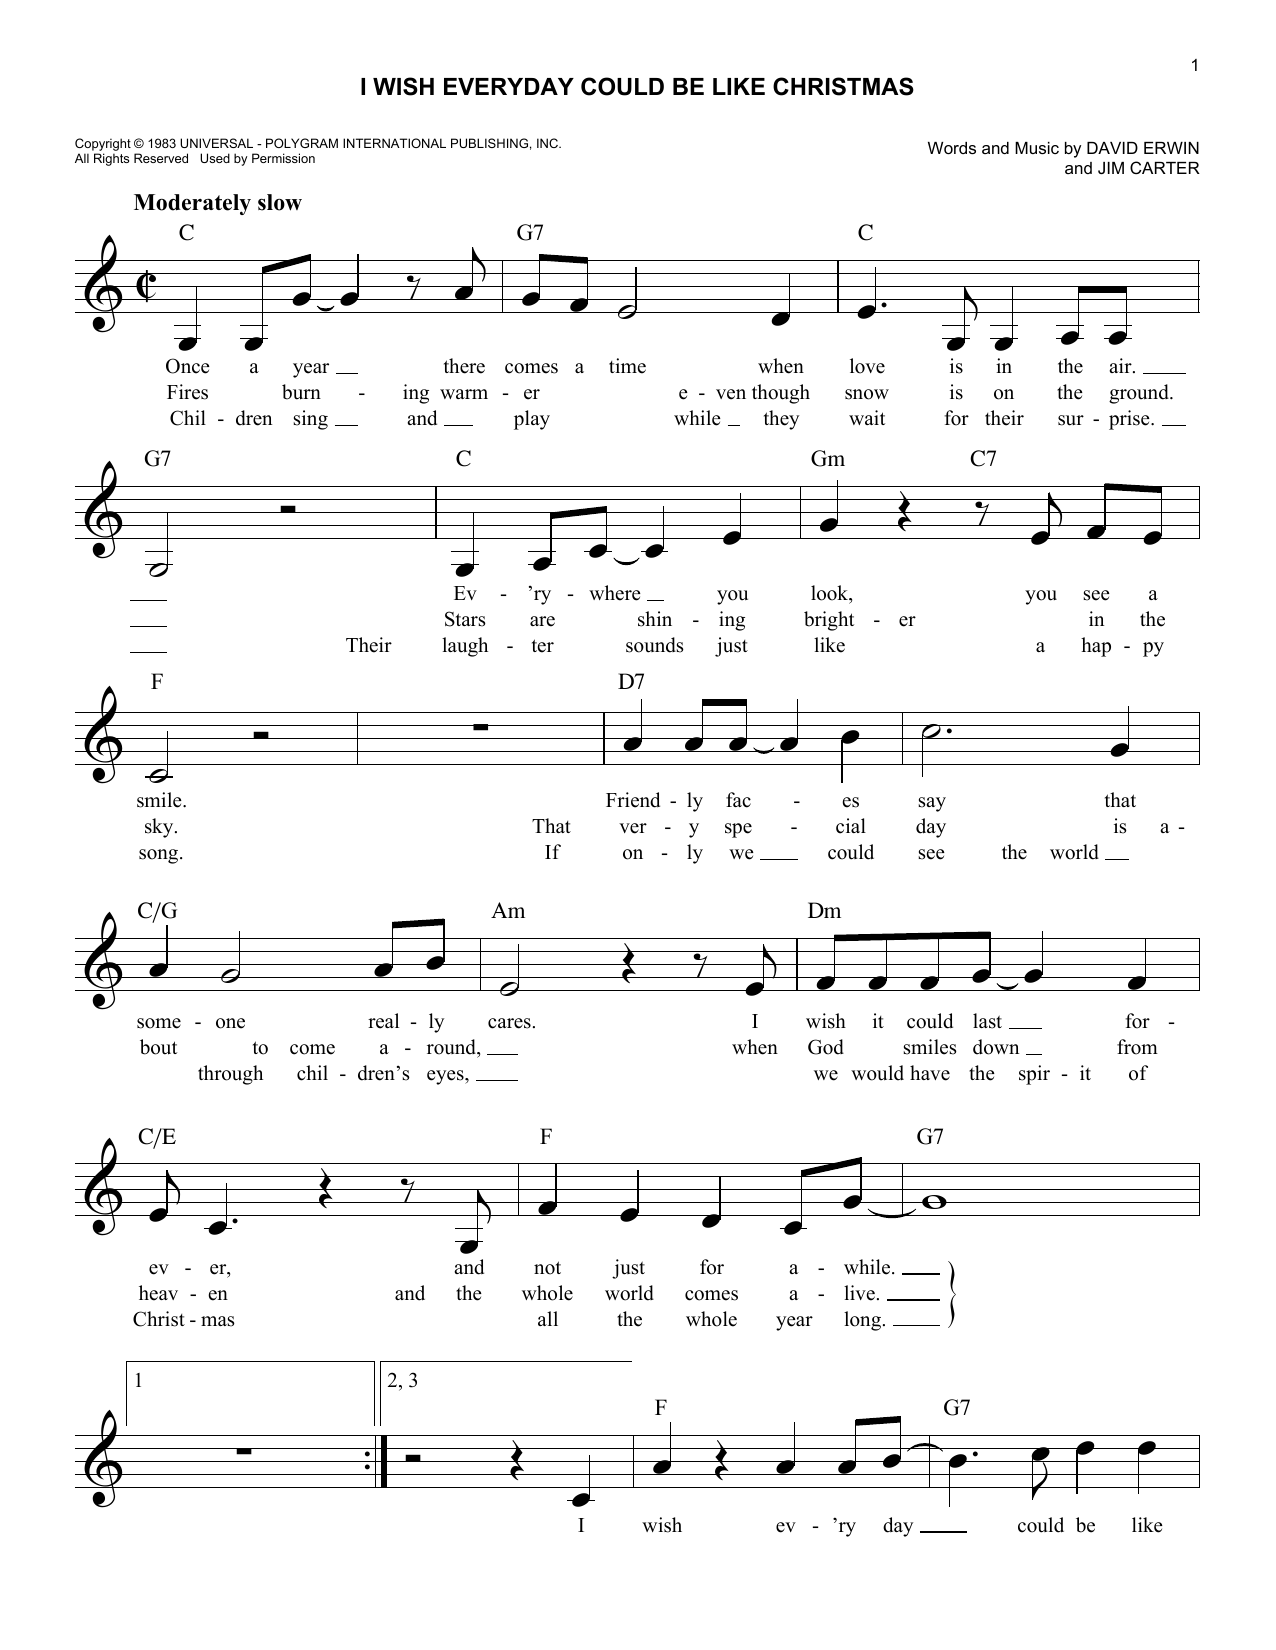 Jim Carter I Wish Everyday Could Be Like Christmas sheet music notes and chords. Download Printable PDF.